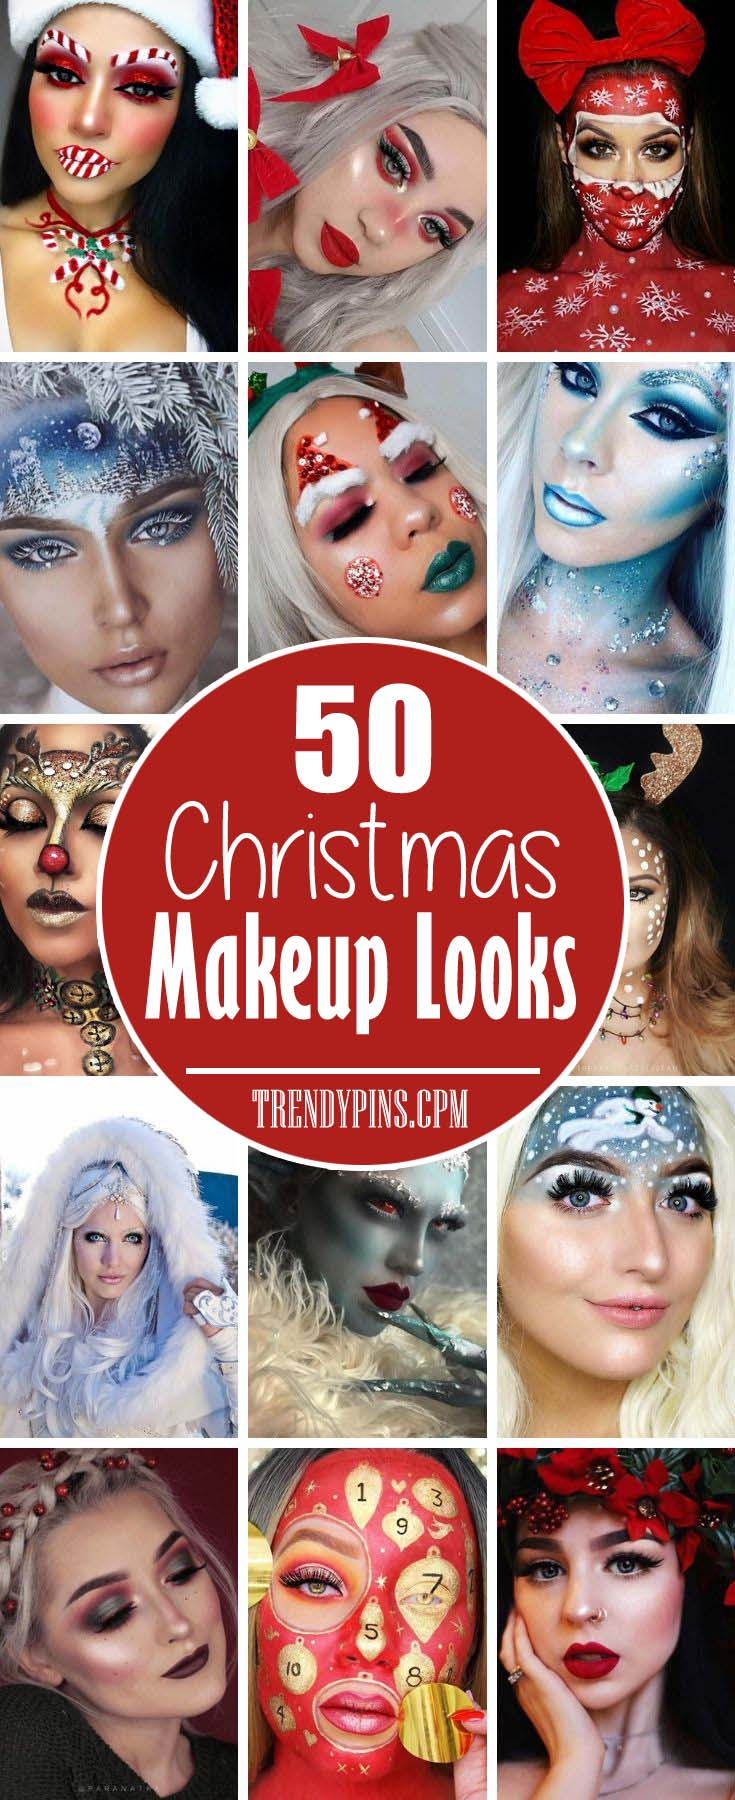 50 Christmas Makeup Looks to Try Out This Season #Christmas #makeup #beauty #trendypins